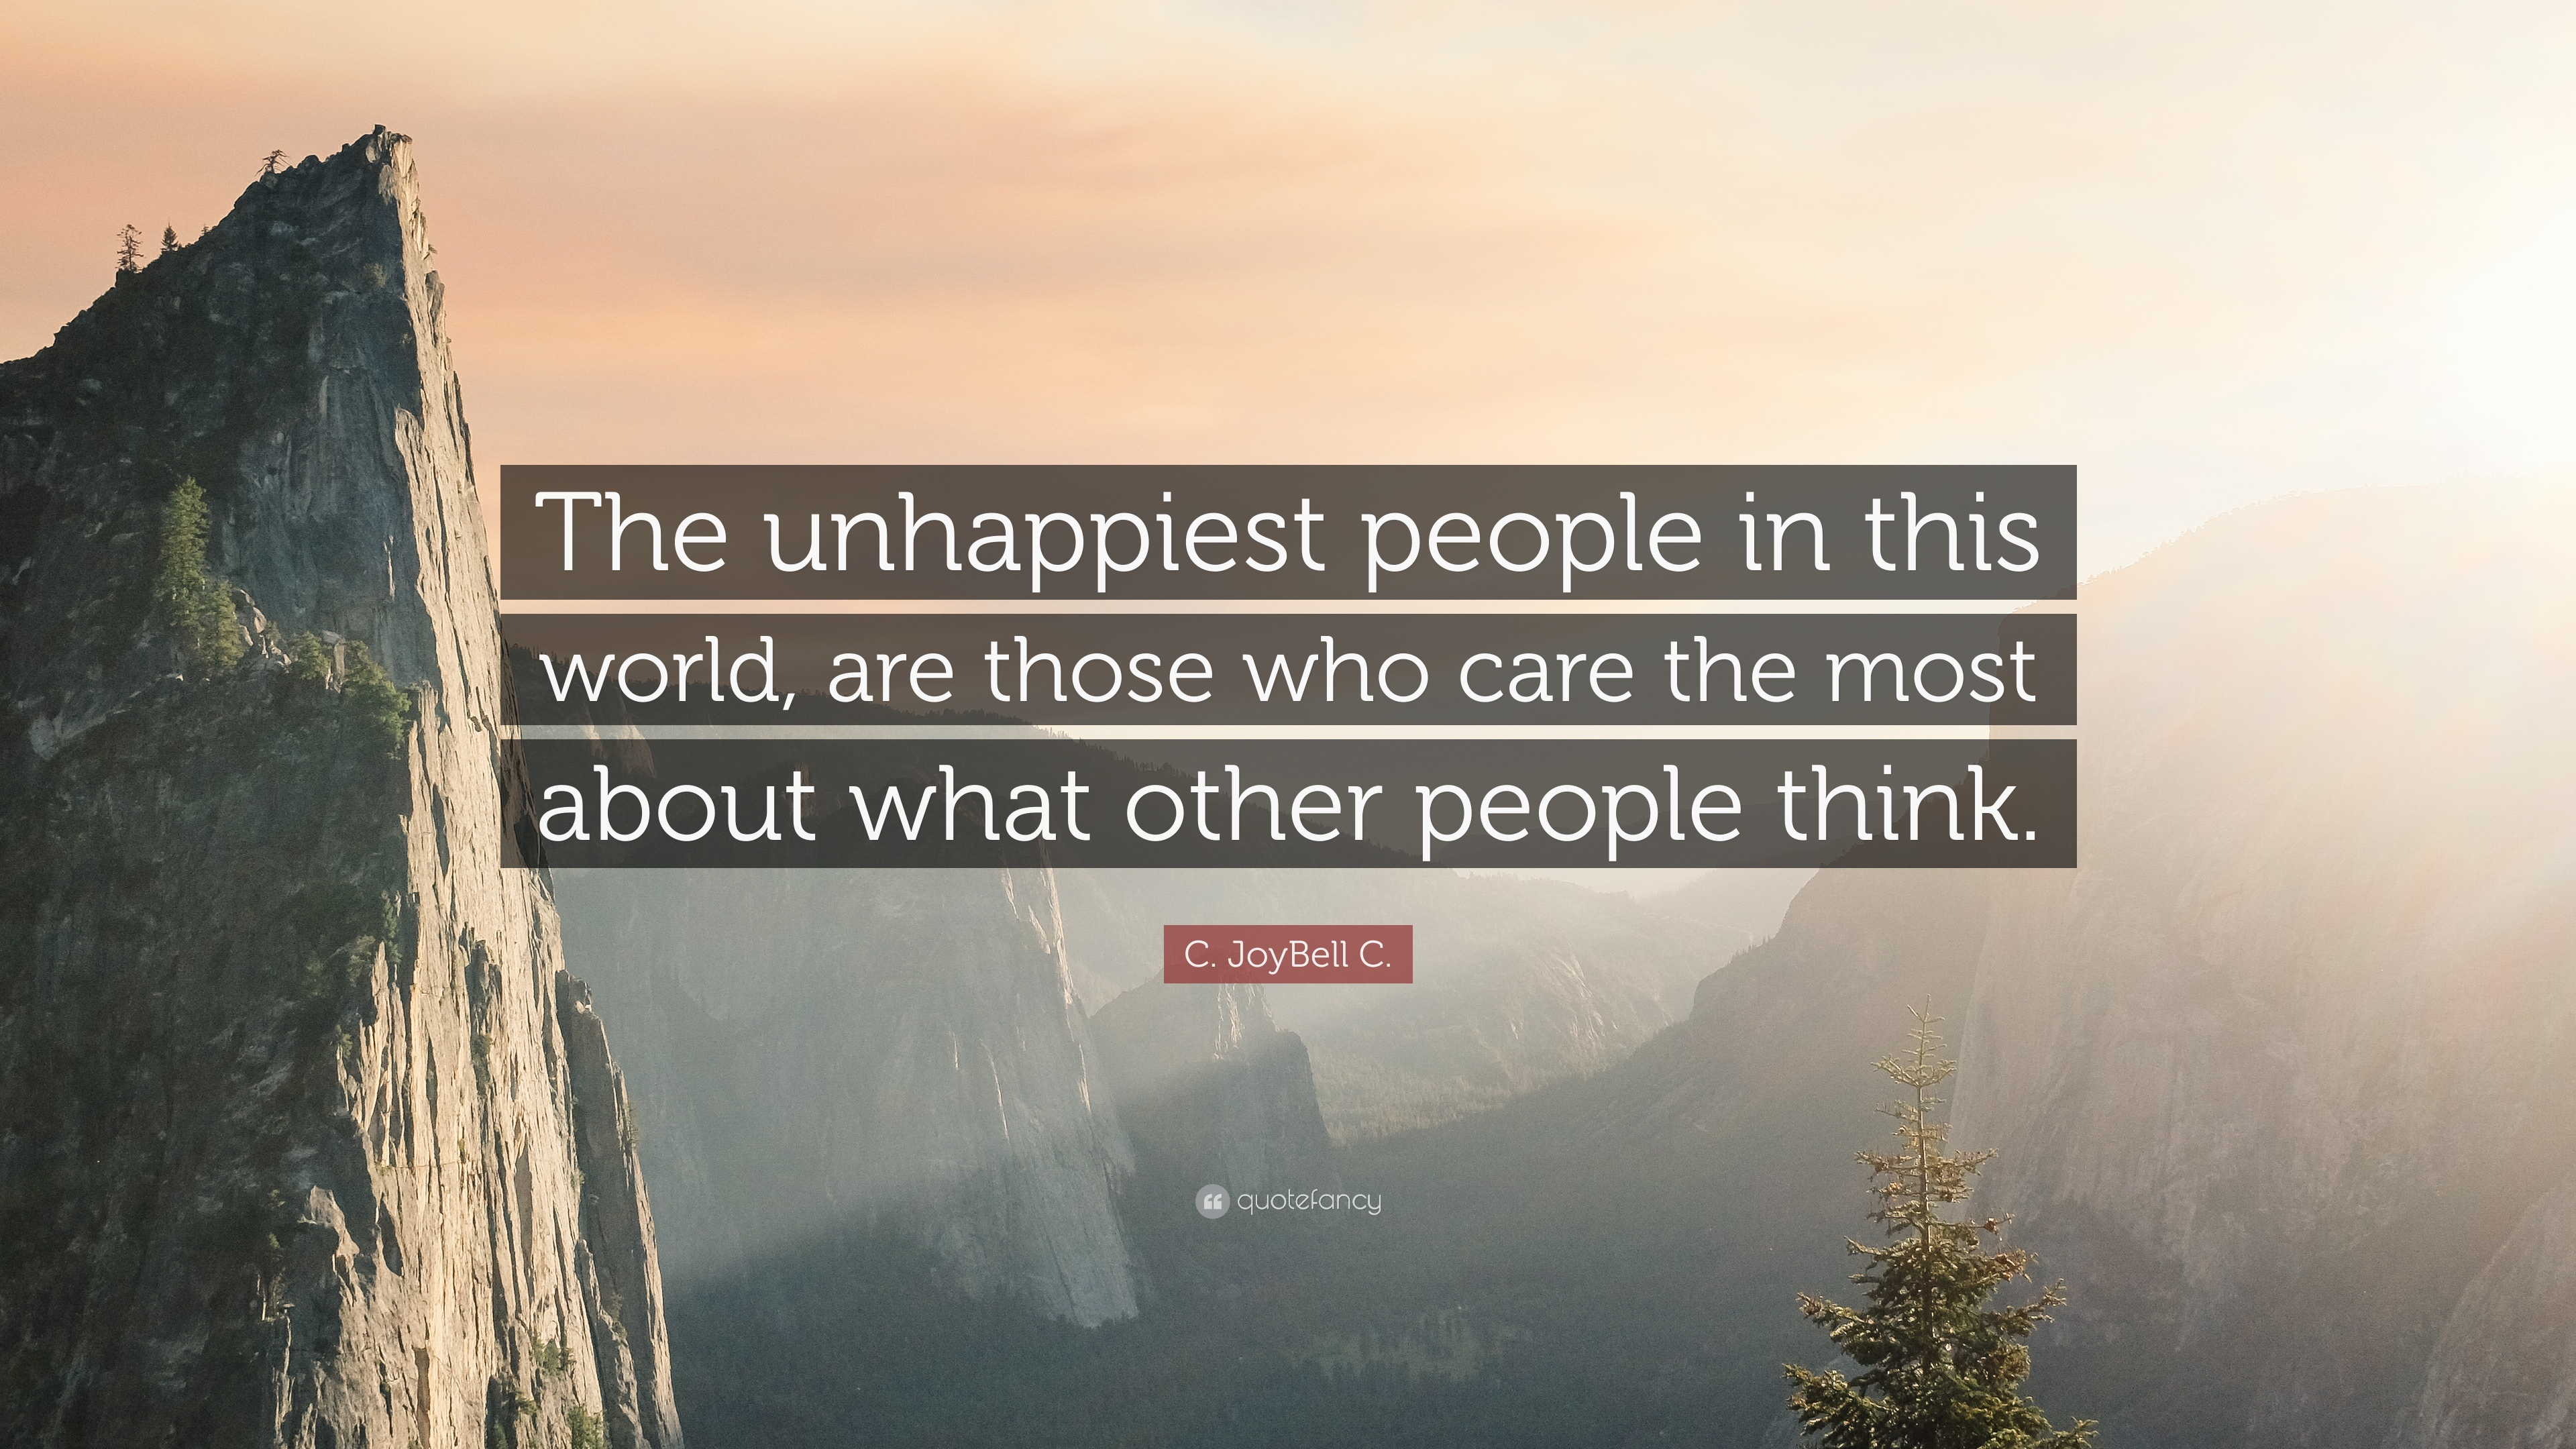 c joybell c quote the unhappiest people in this world are